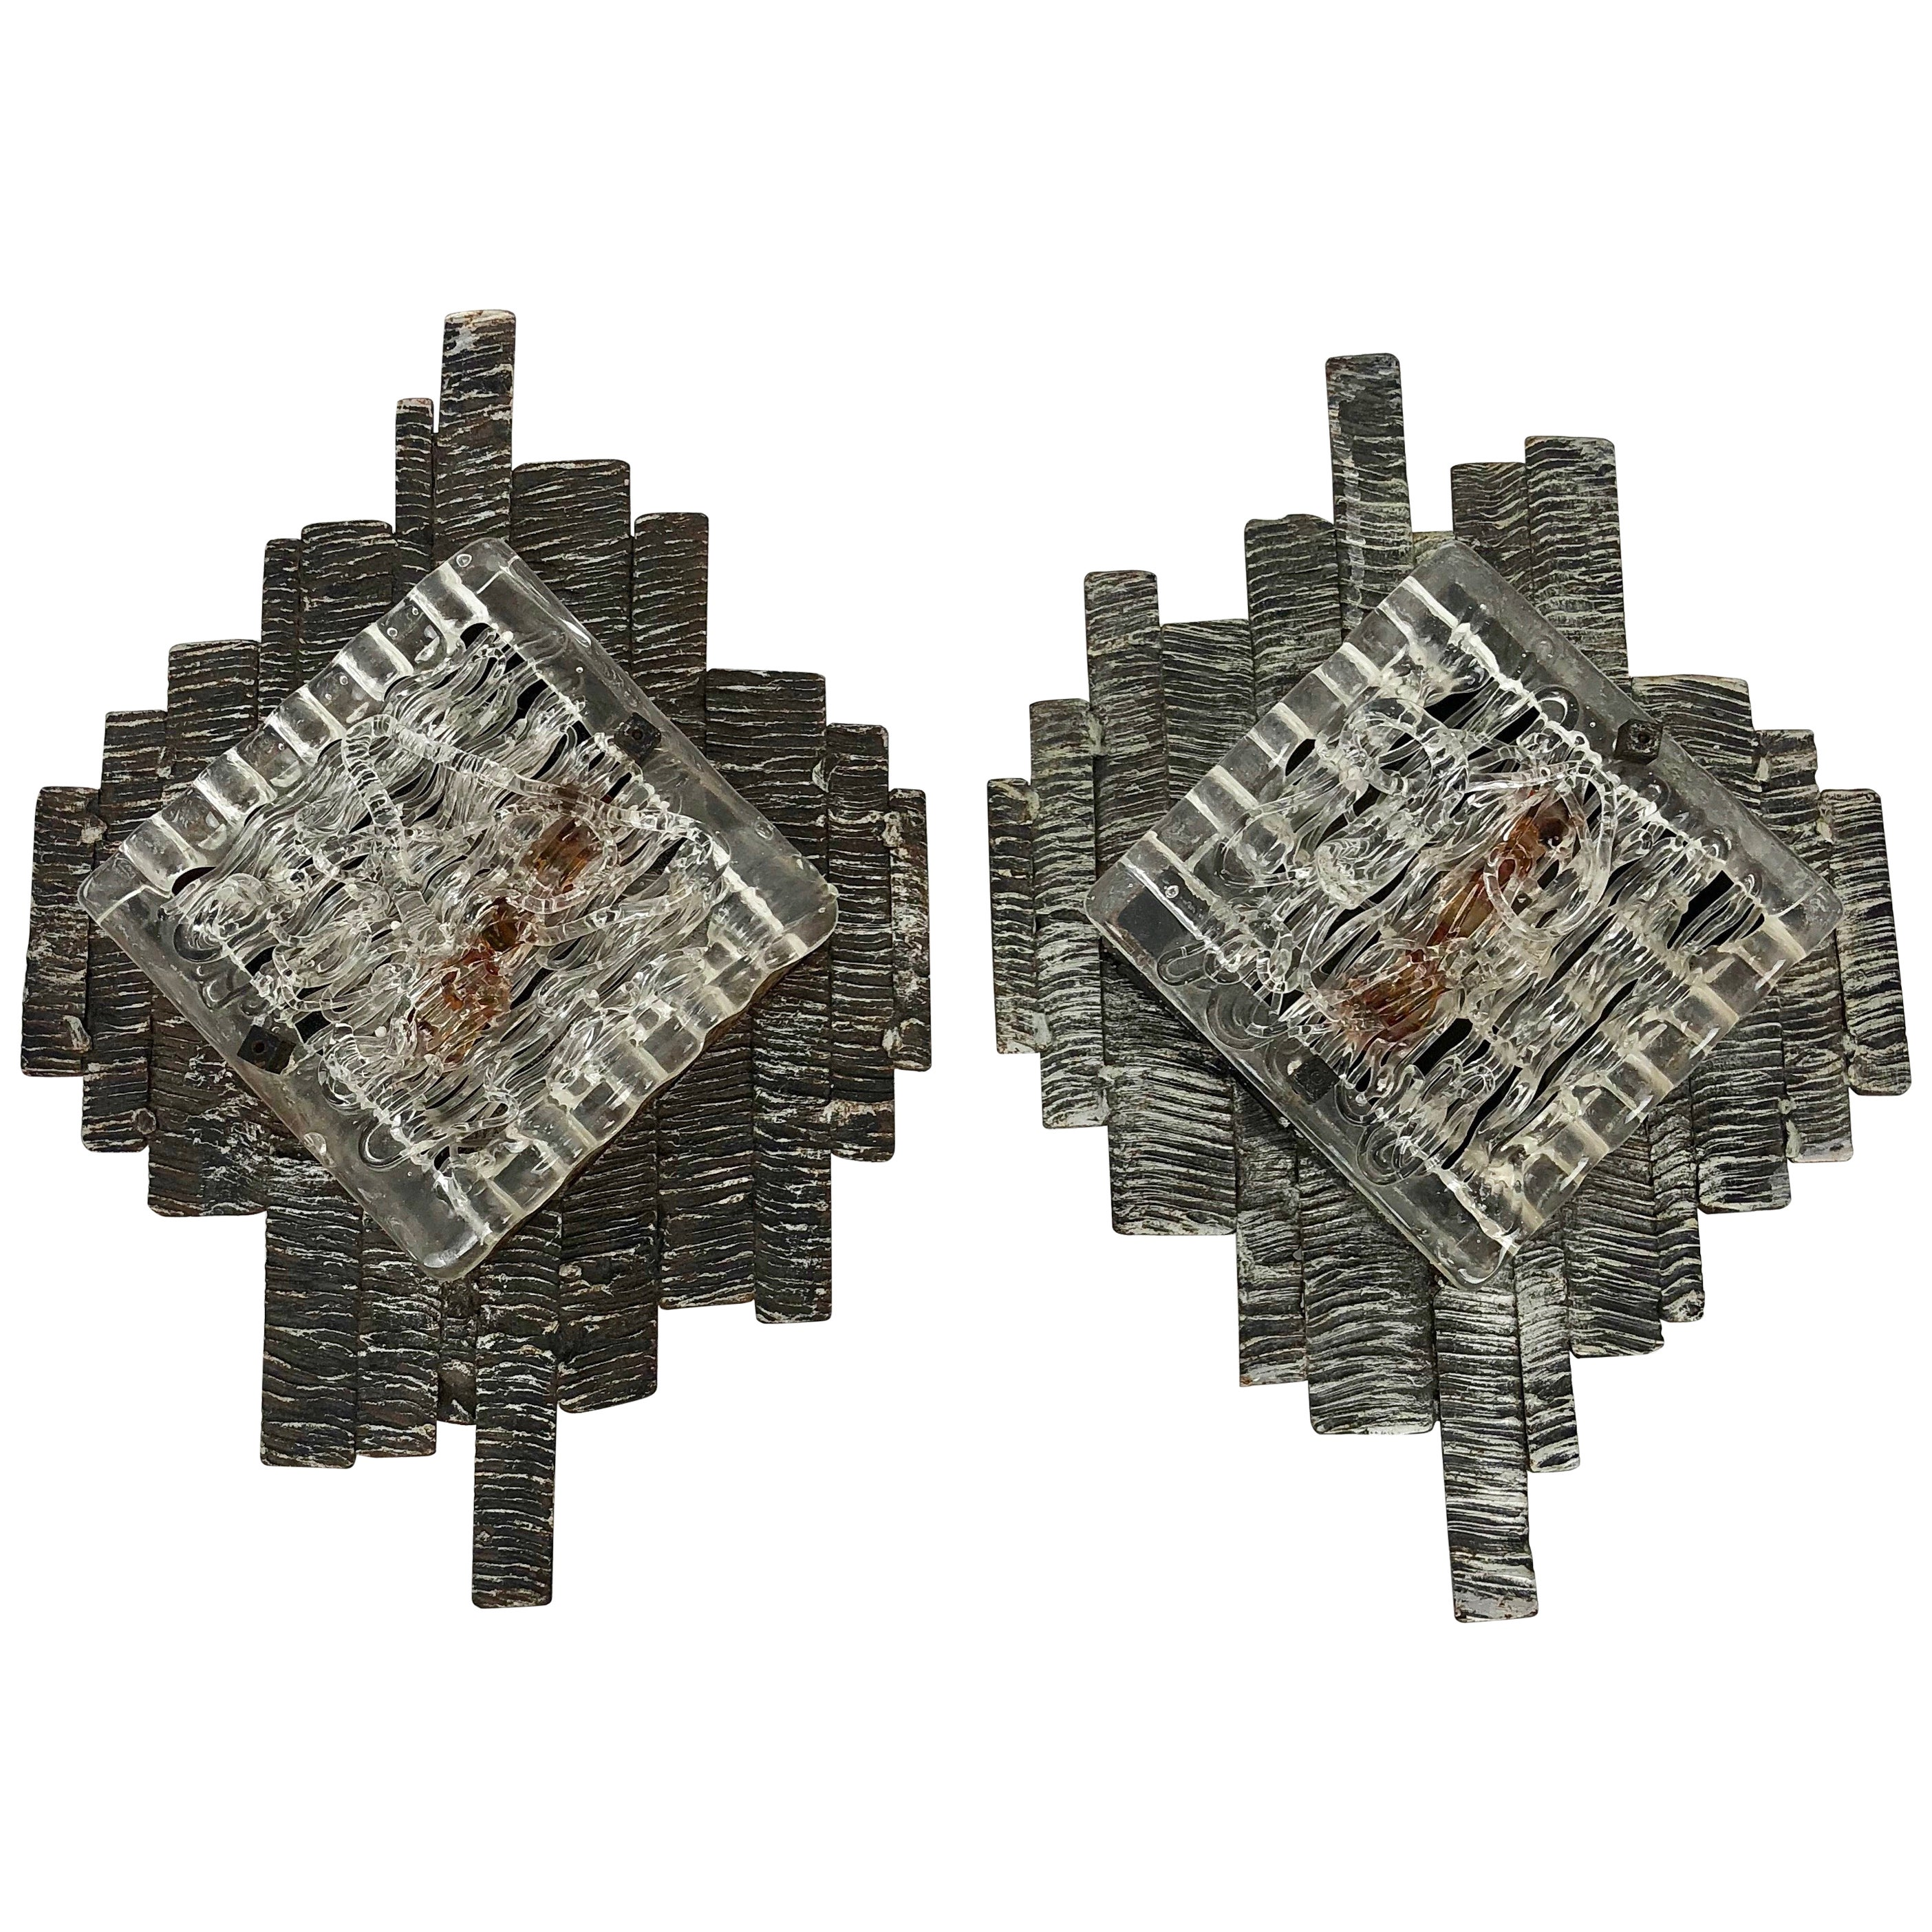 Pair of Brutalist Wall Sconces, in Style of Poliarte, Italy, 1970s Murano Glass